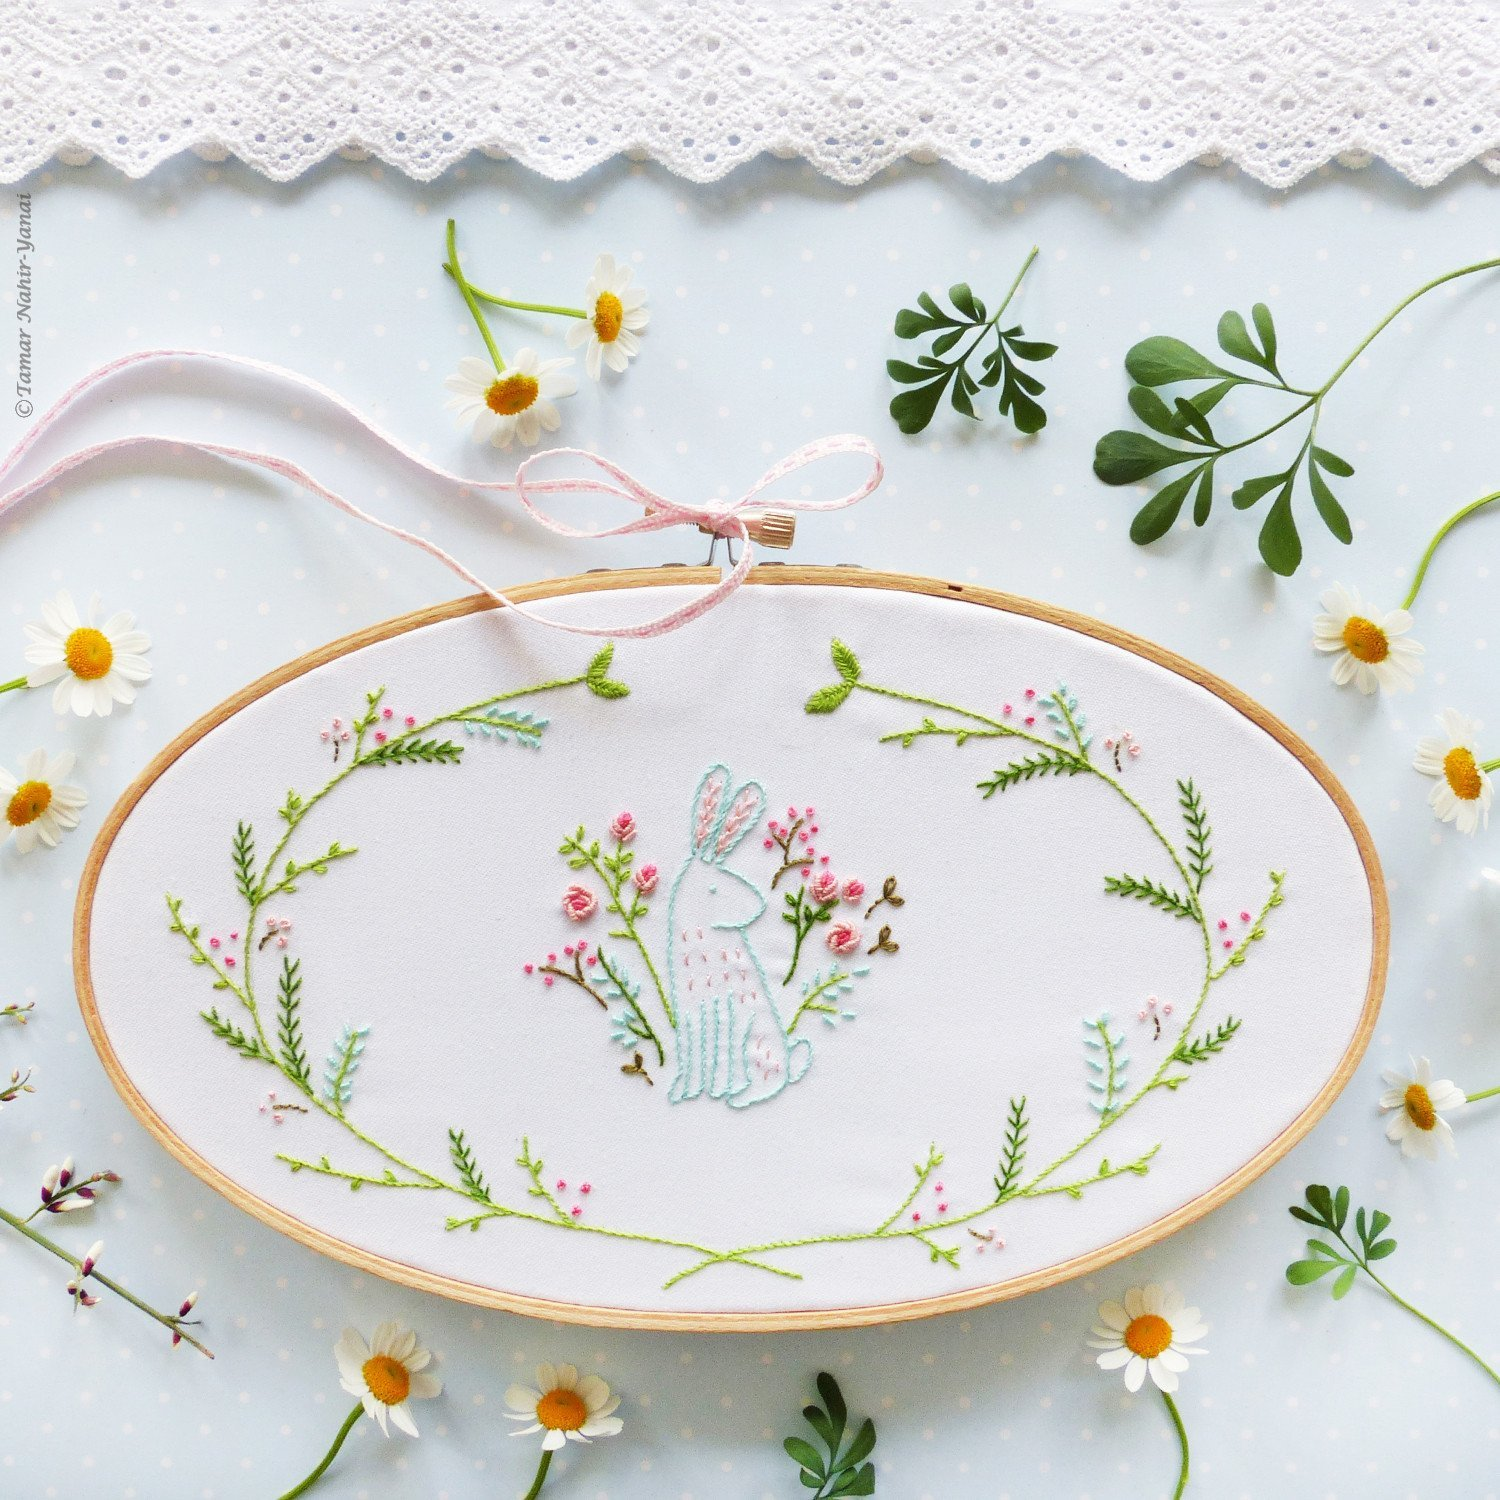 Easter Bunny Embroidery Kit